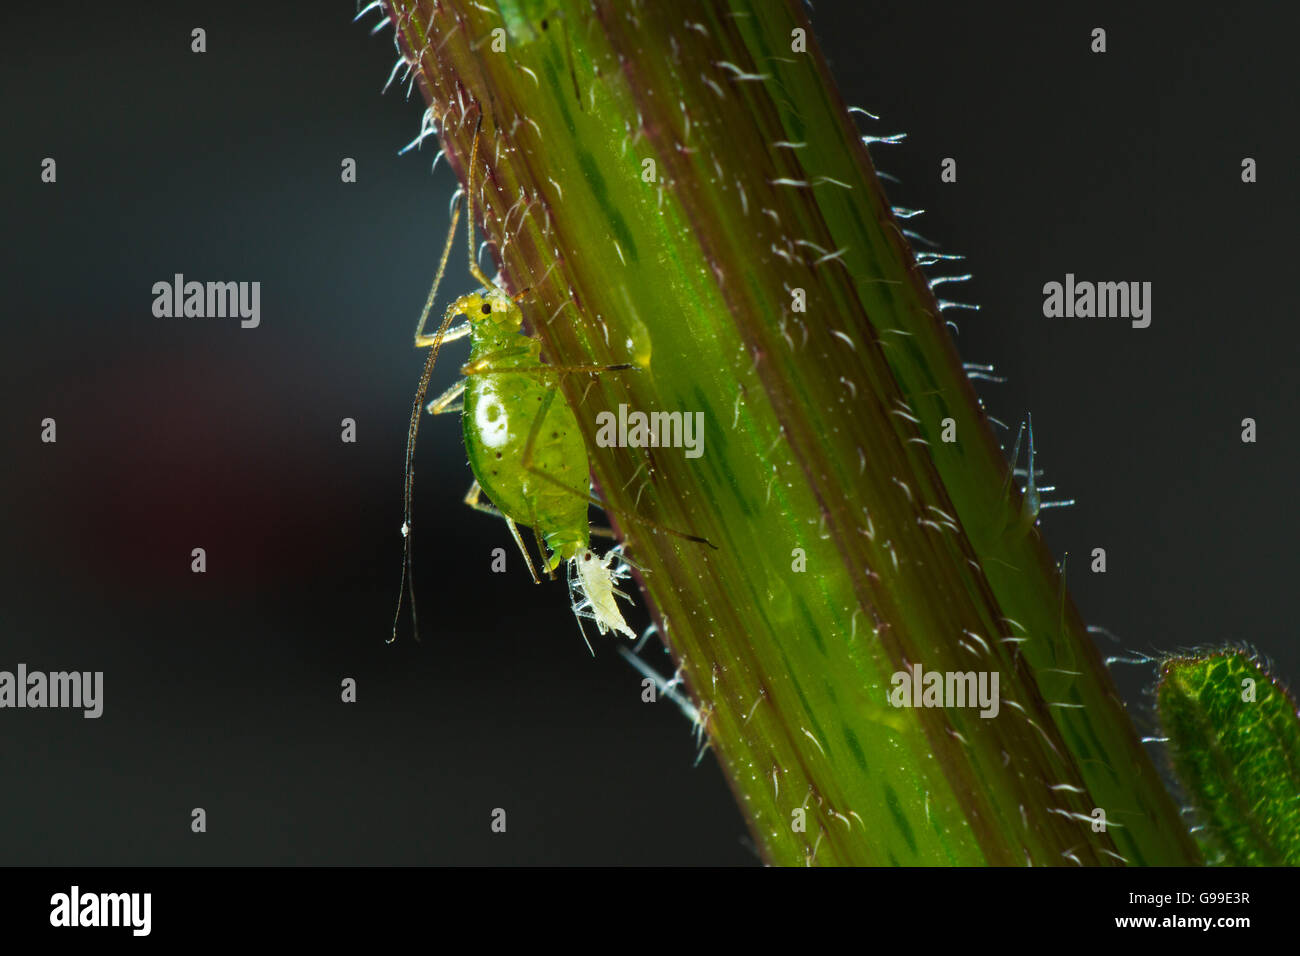 Common Nettle Aphid Microlophium carnosum reproducing - Stock Image